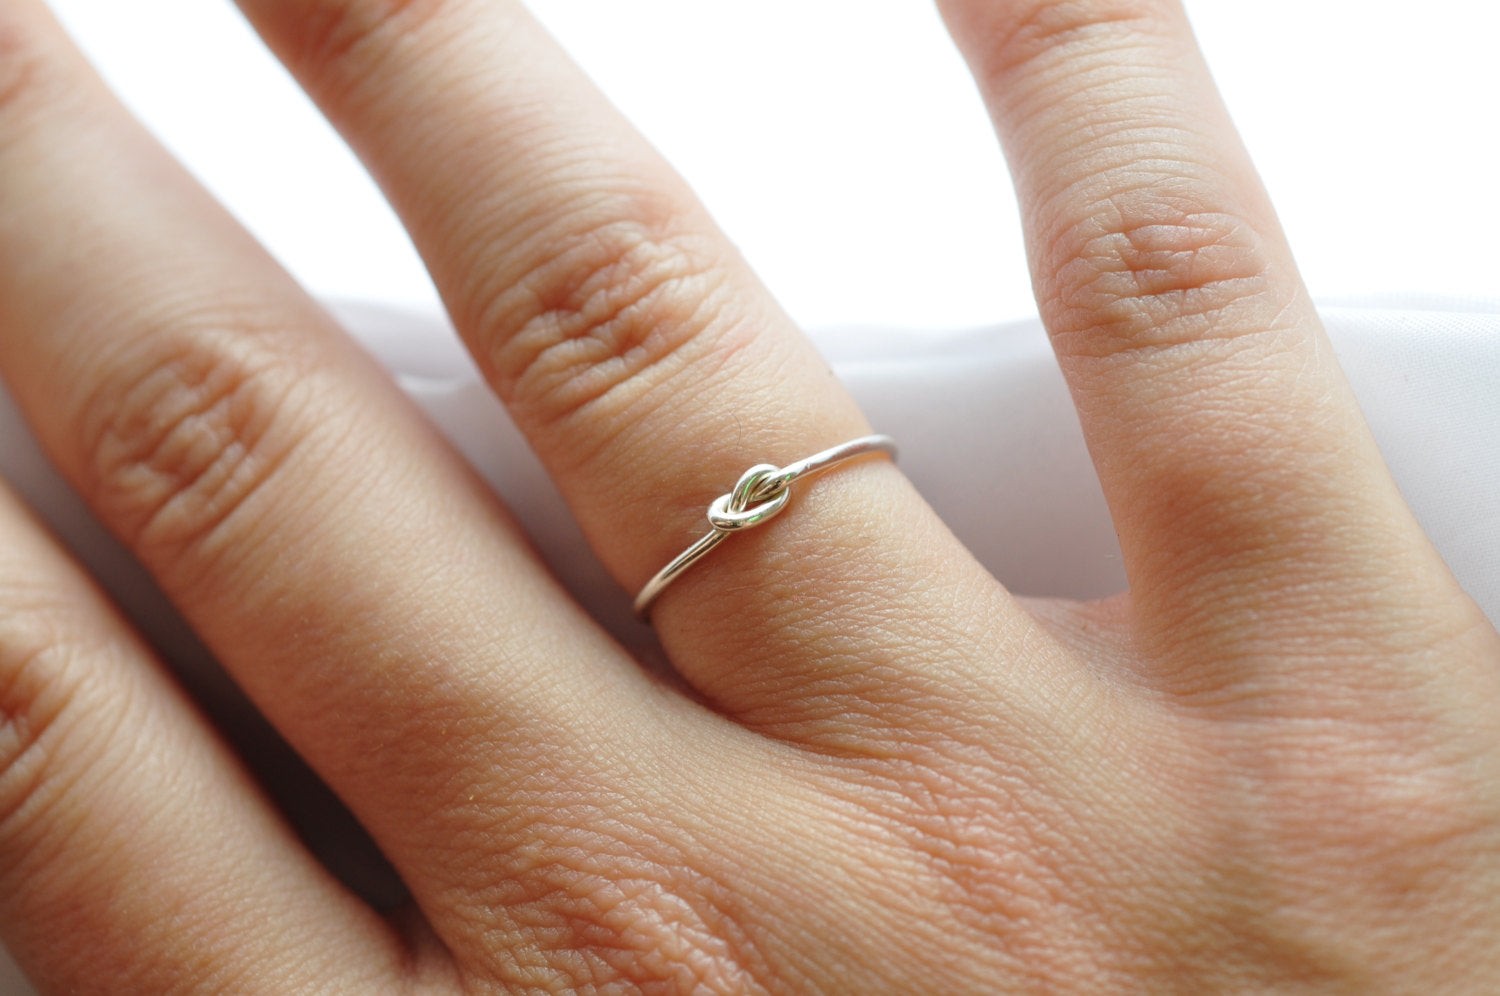 Friendship Rings: Silver Knot Jewelry, Gifts for Best Friends